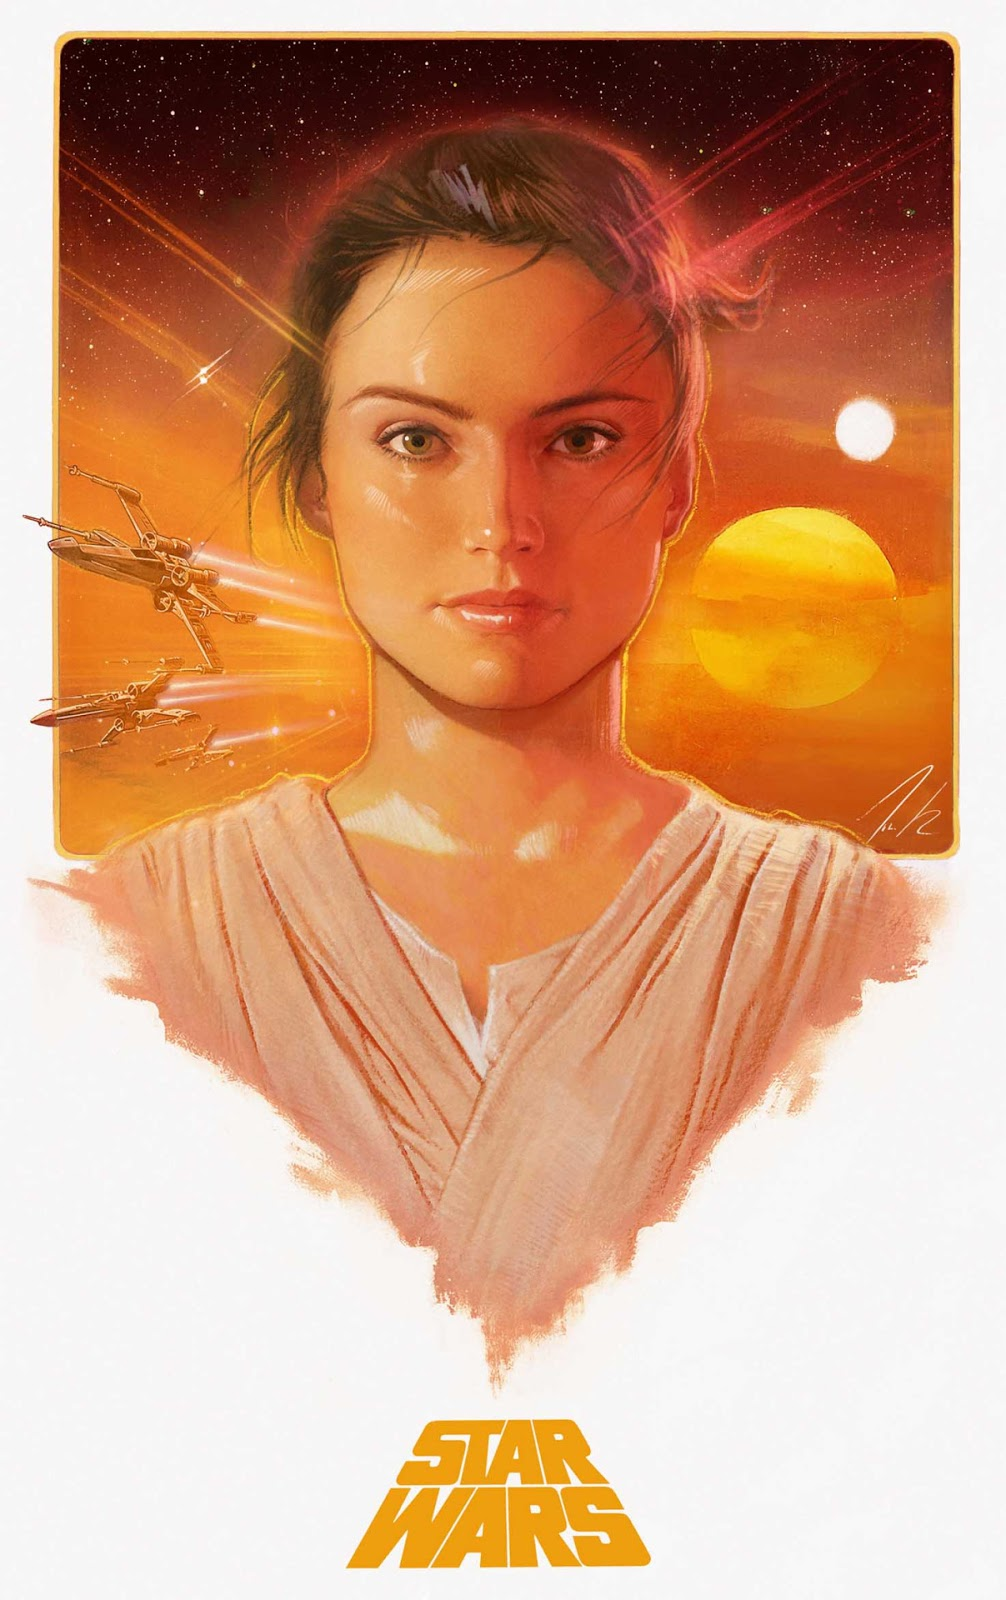 Star Wars The Force Awakens: Rey